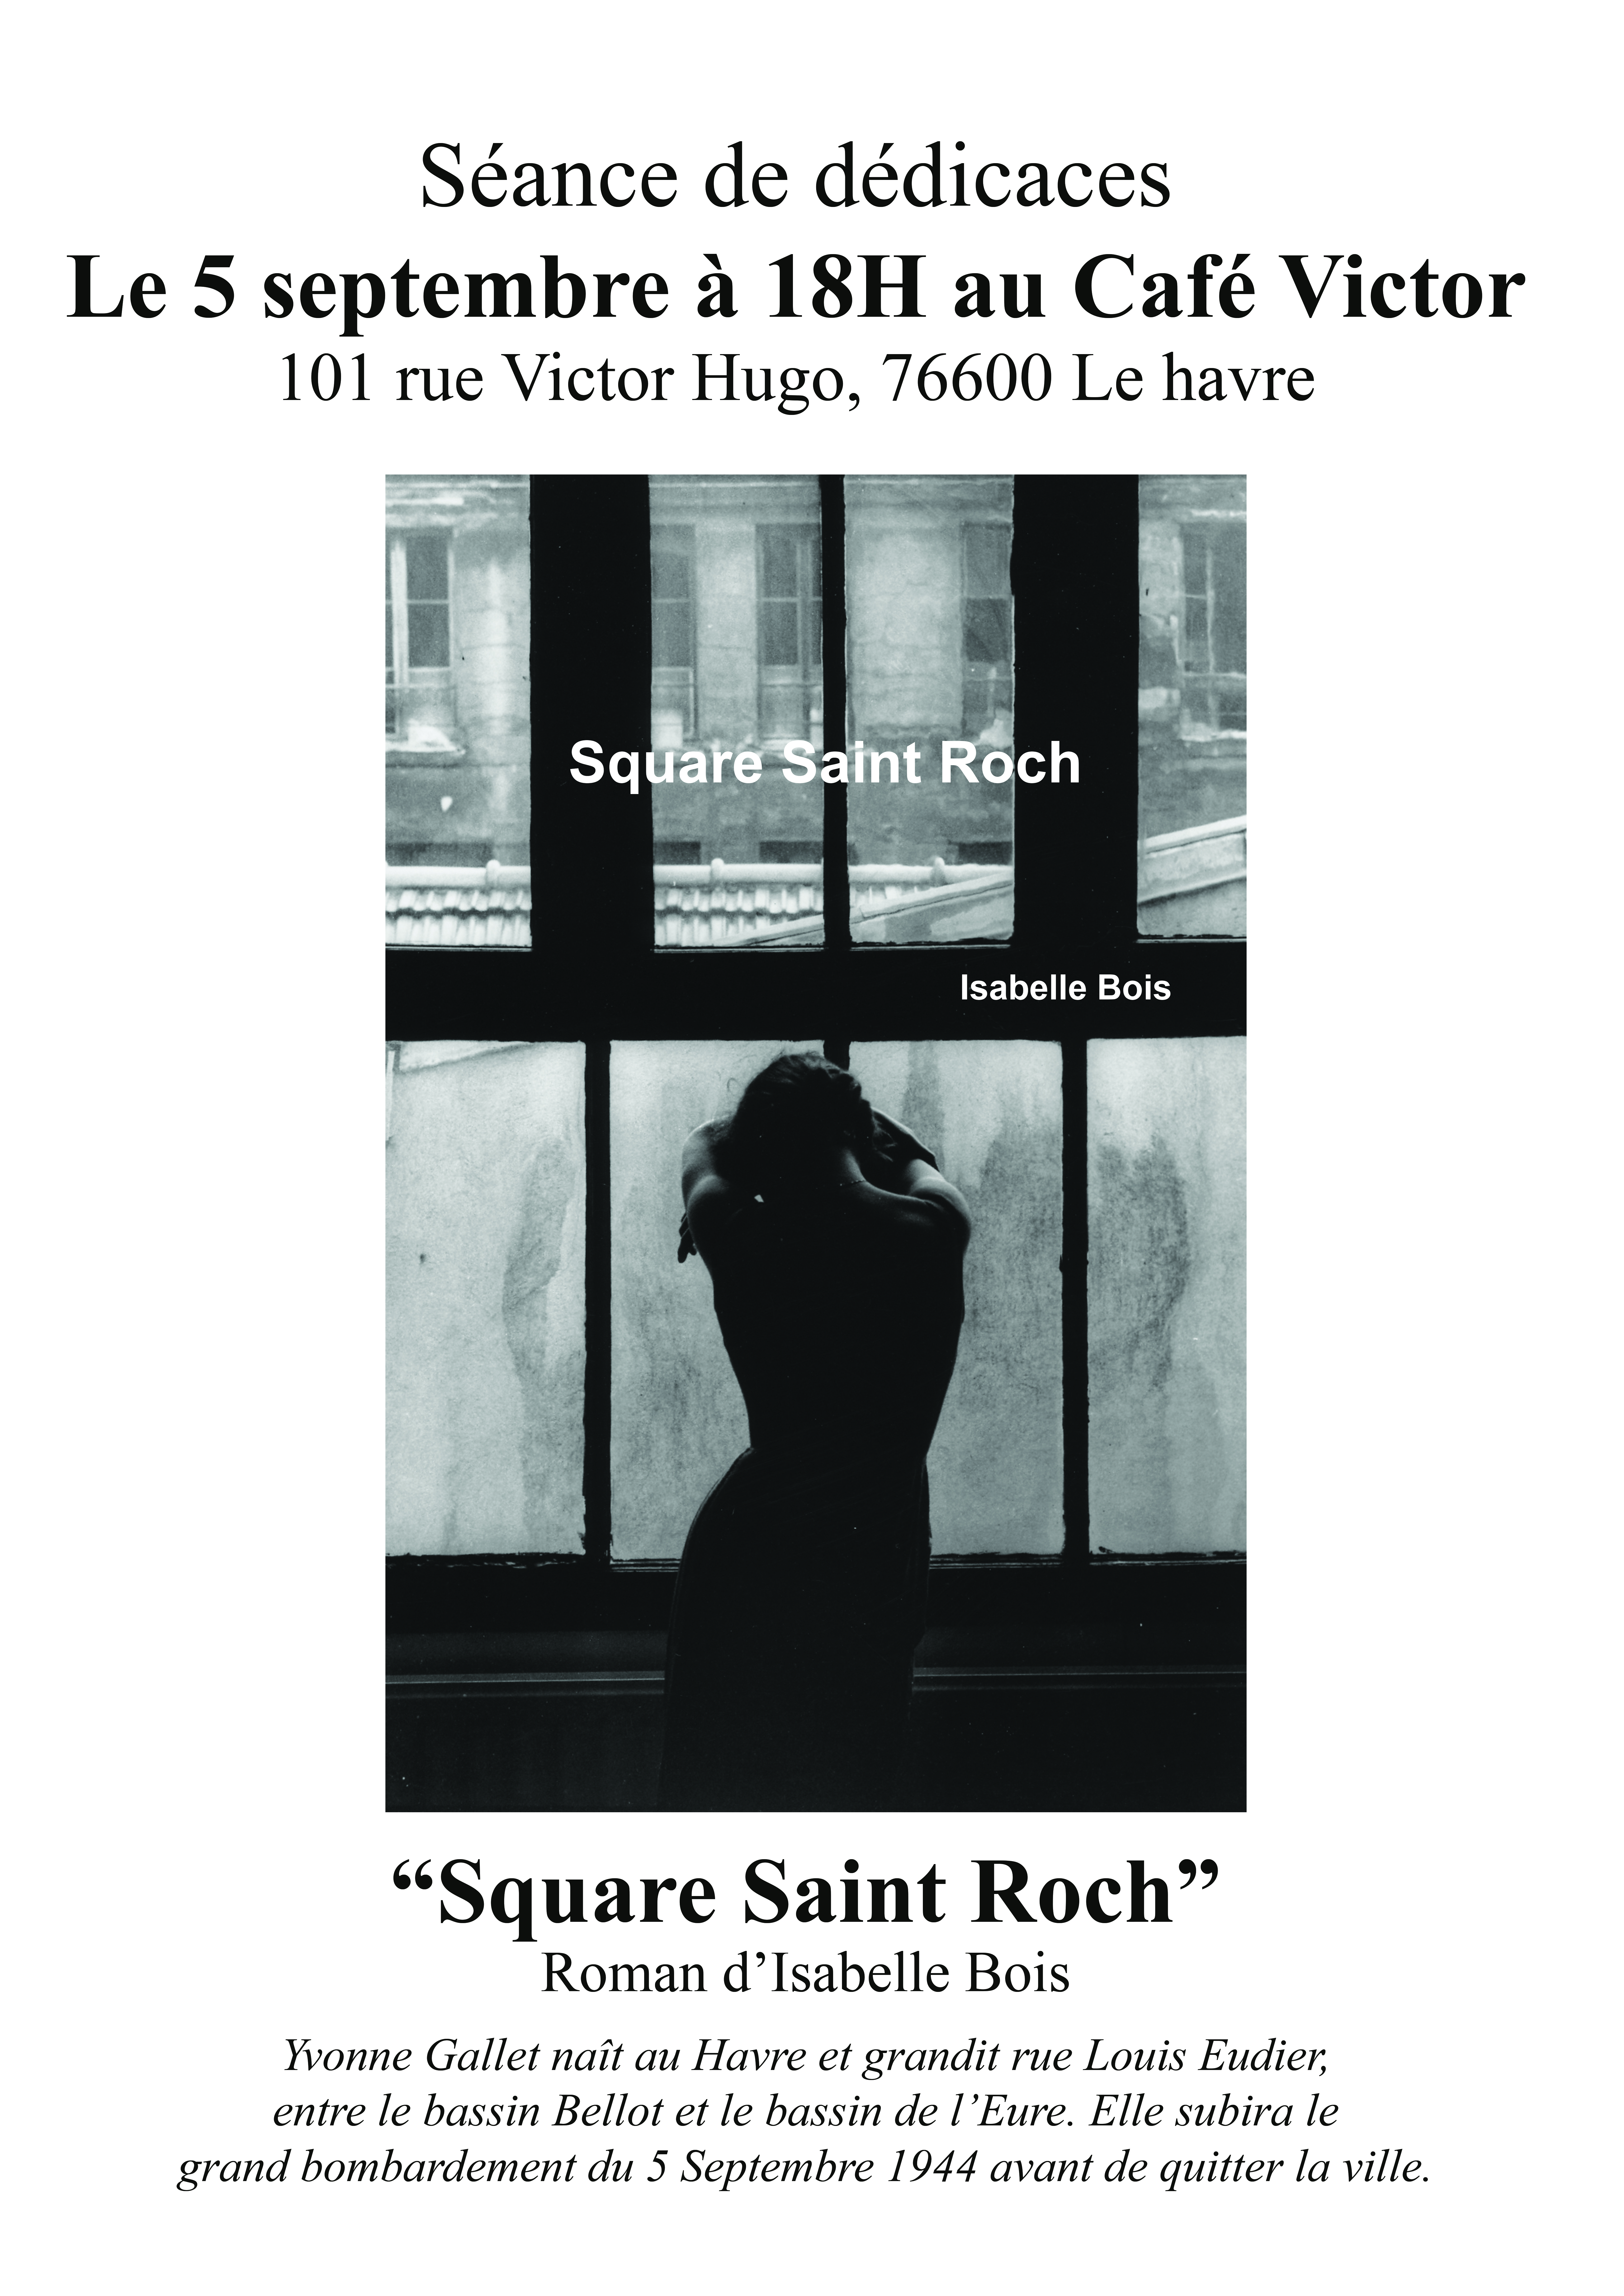 affiche sts Roch 5 sept le Havresmall